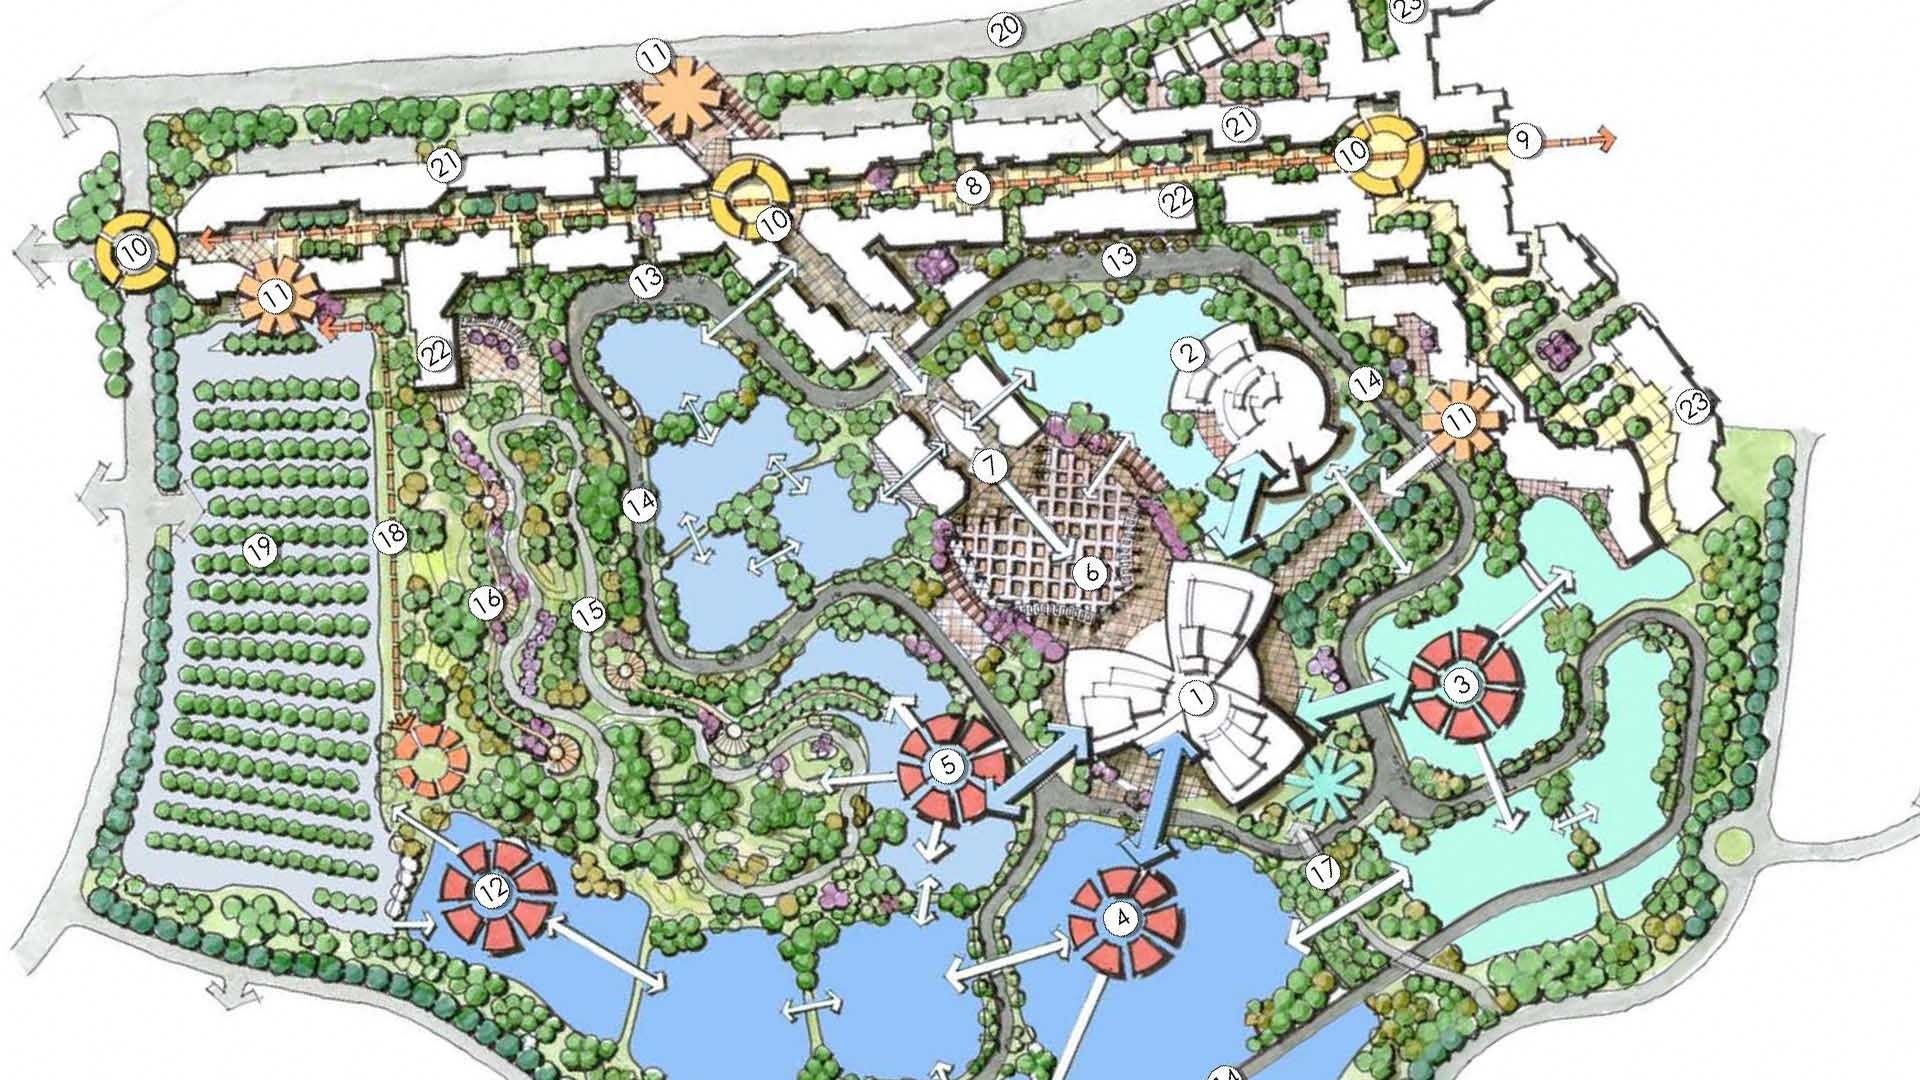 Water Theme Park Plan Google Search Surf Zoo Creatures